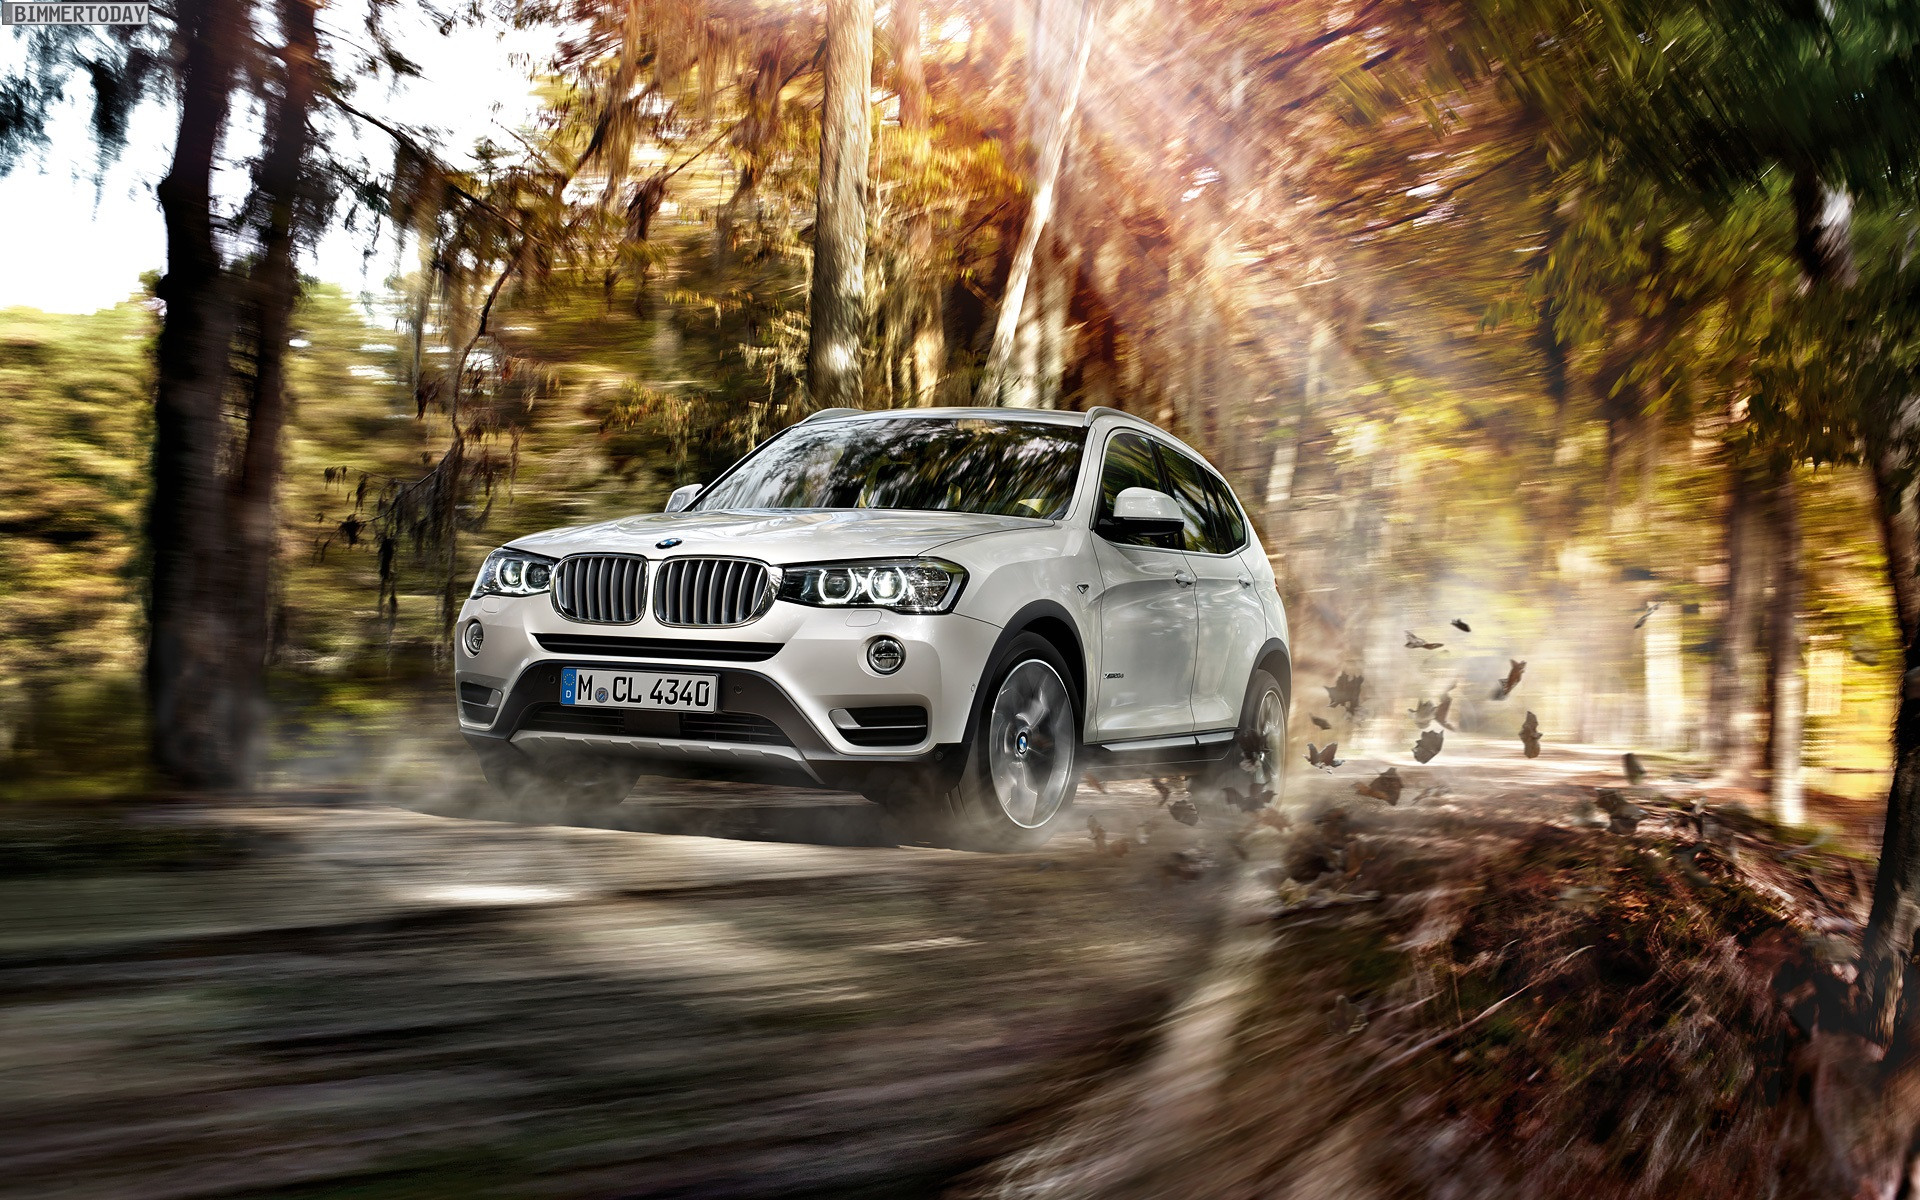 2014 BMW X3 Facelift F25 LCI Wallpaper 1920 x 1200 04